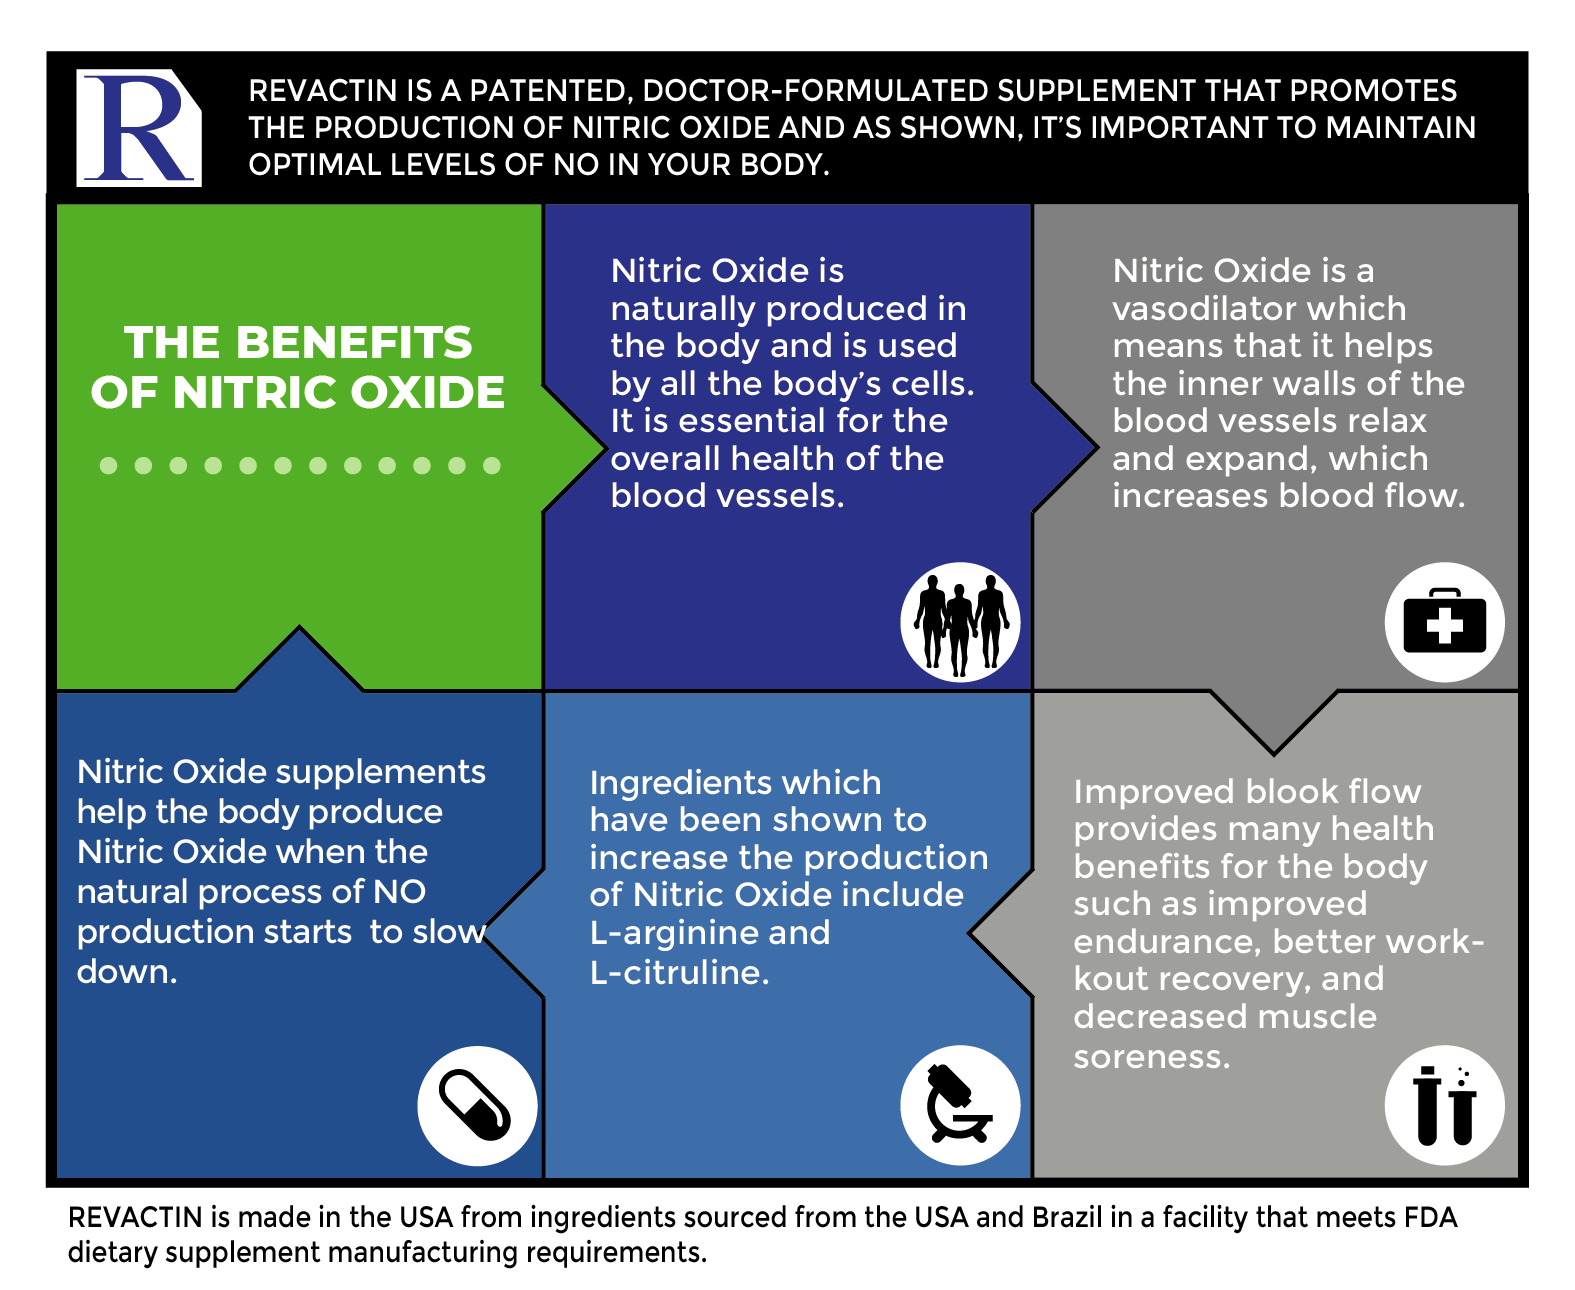 Benefits of Nitric Oxide